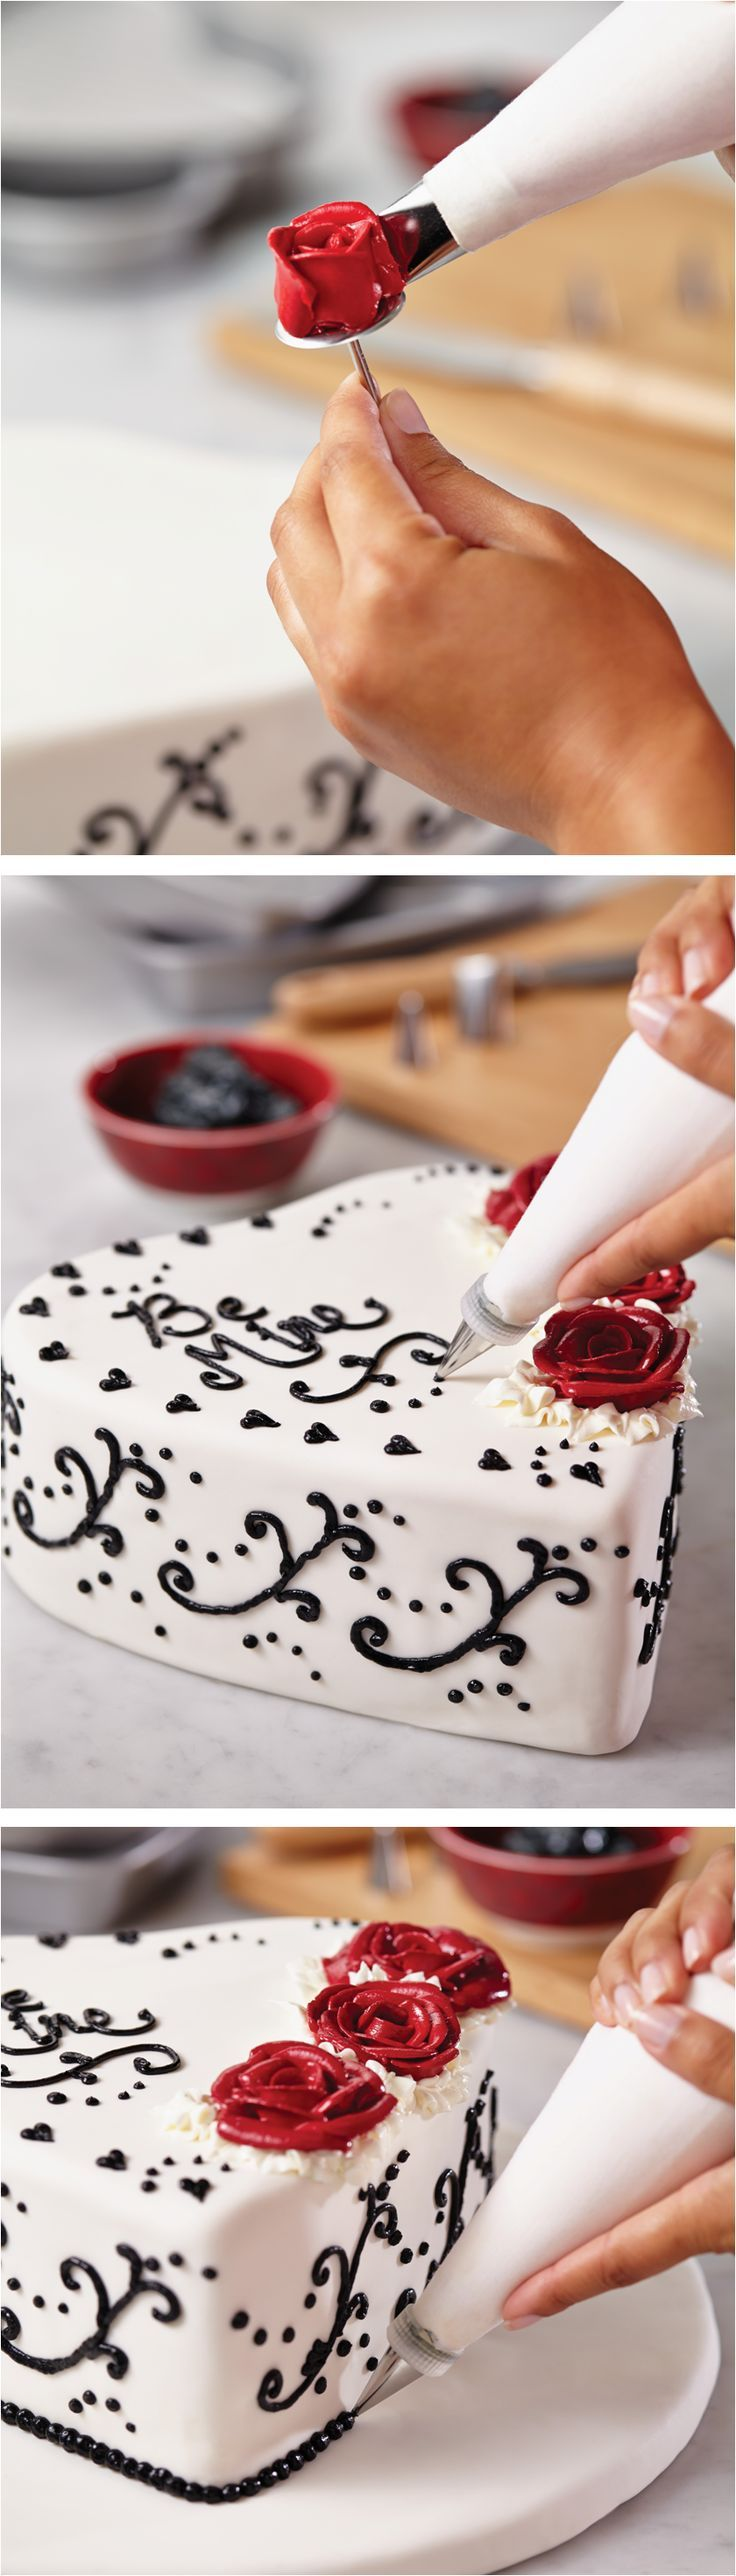 Click on the image to get cake decorating with the Cake Boss 10-Piece Heart Bakeware Set.